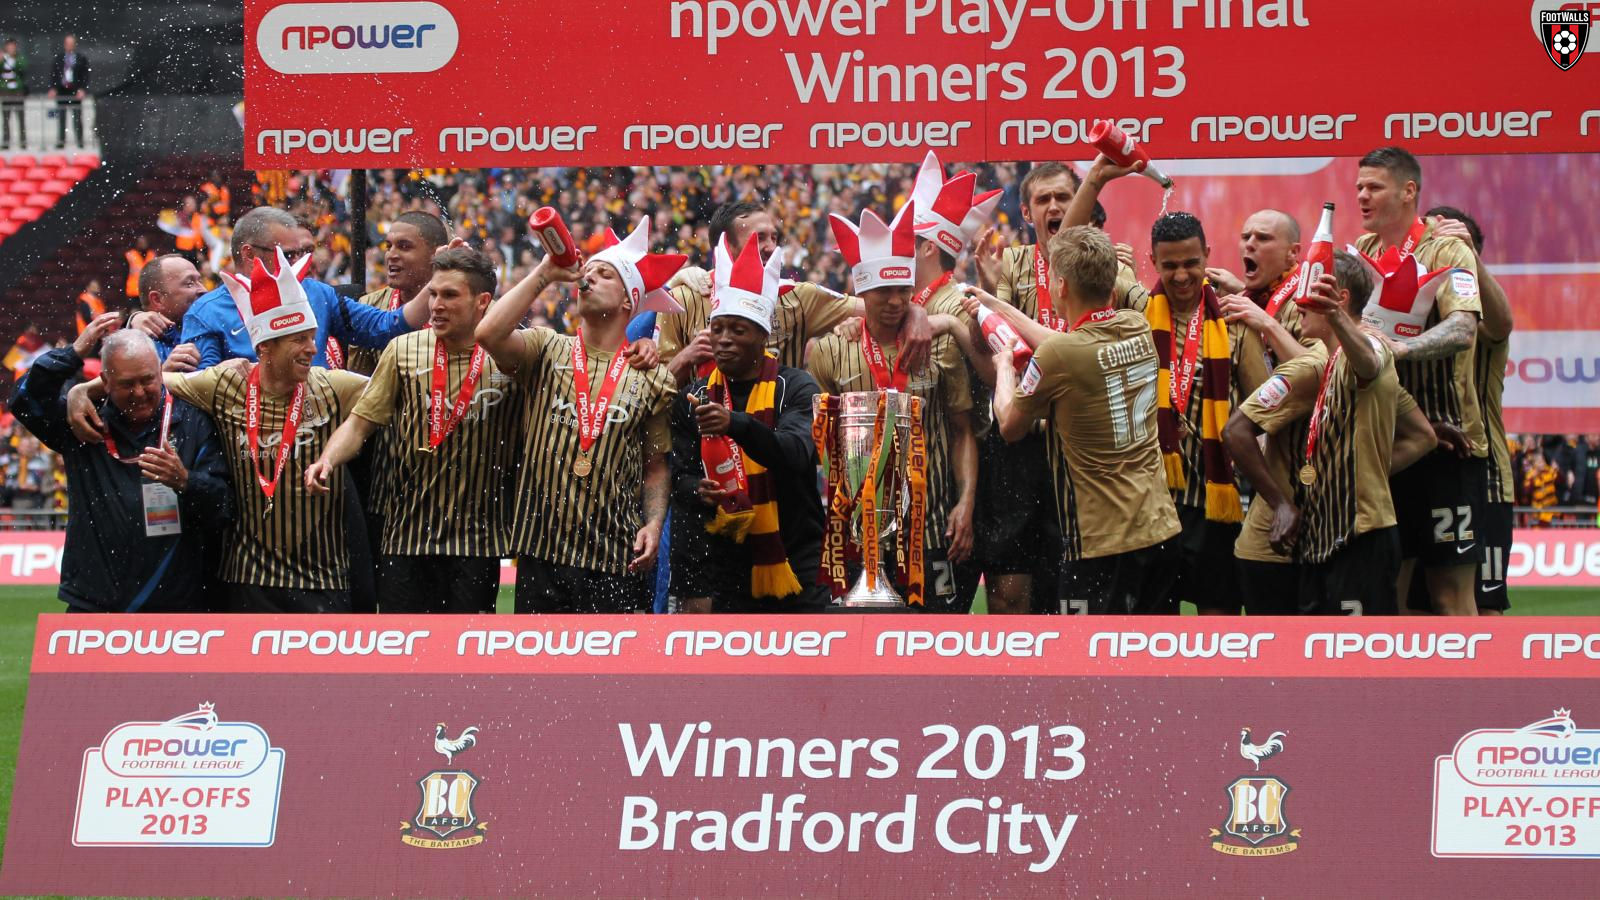 Bradford City Wallpaper #6